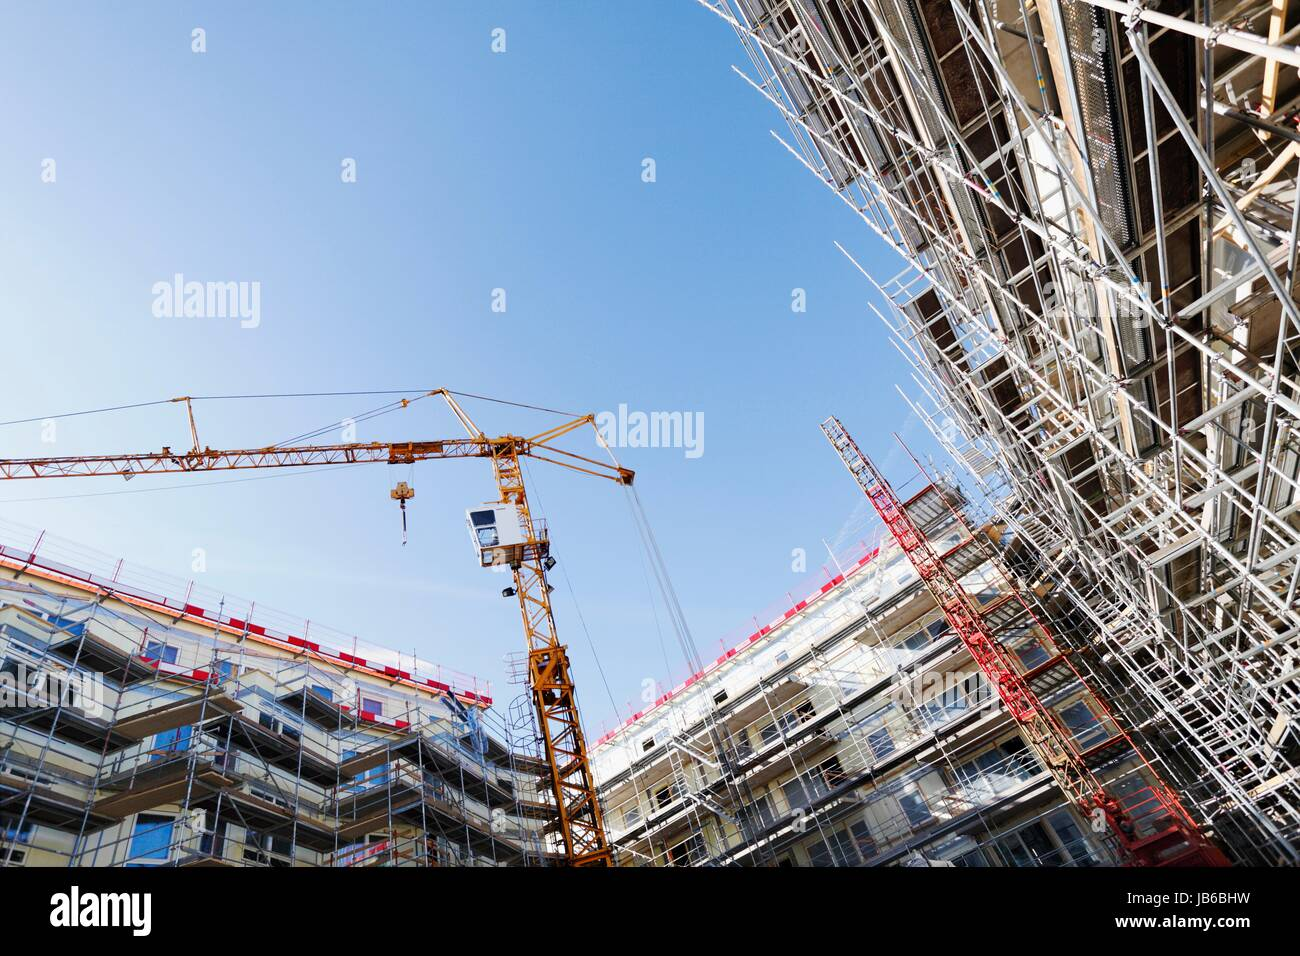 Construction site with cranes and scaffolding. - Stock Image